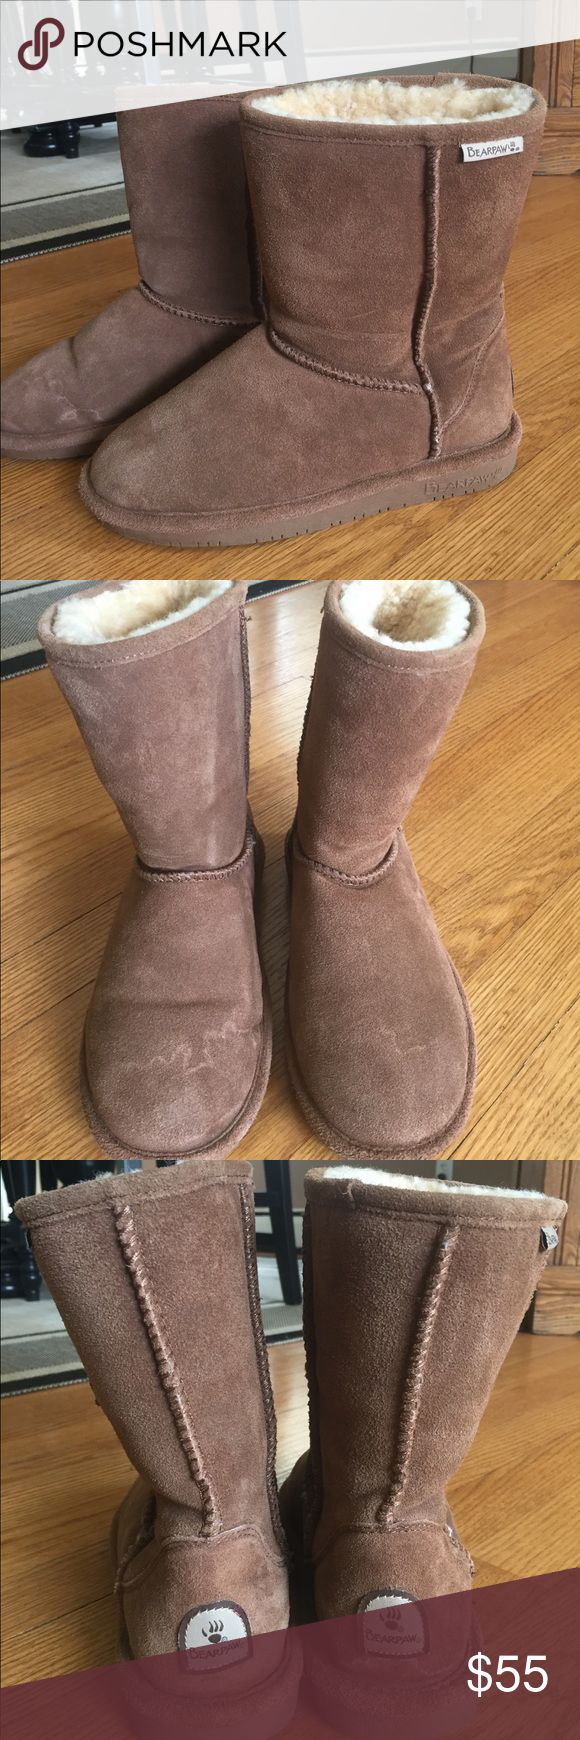 Bearoaw sheepskin boots.   ☃️ These boots are like new- they're just as nice as UGGS, with genuine sheepskin which is still warm and fluffy.  Love them!  Super warm and comfy for winter! BearPaw Shoes Winter & Rain Boots